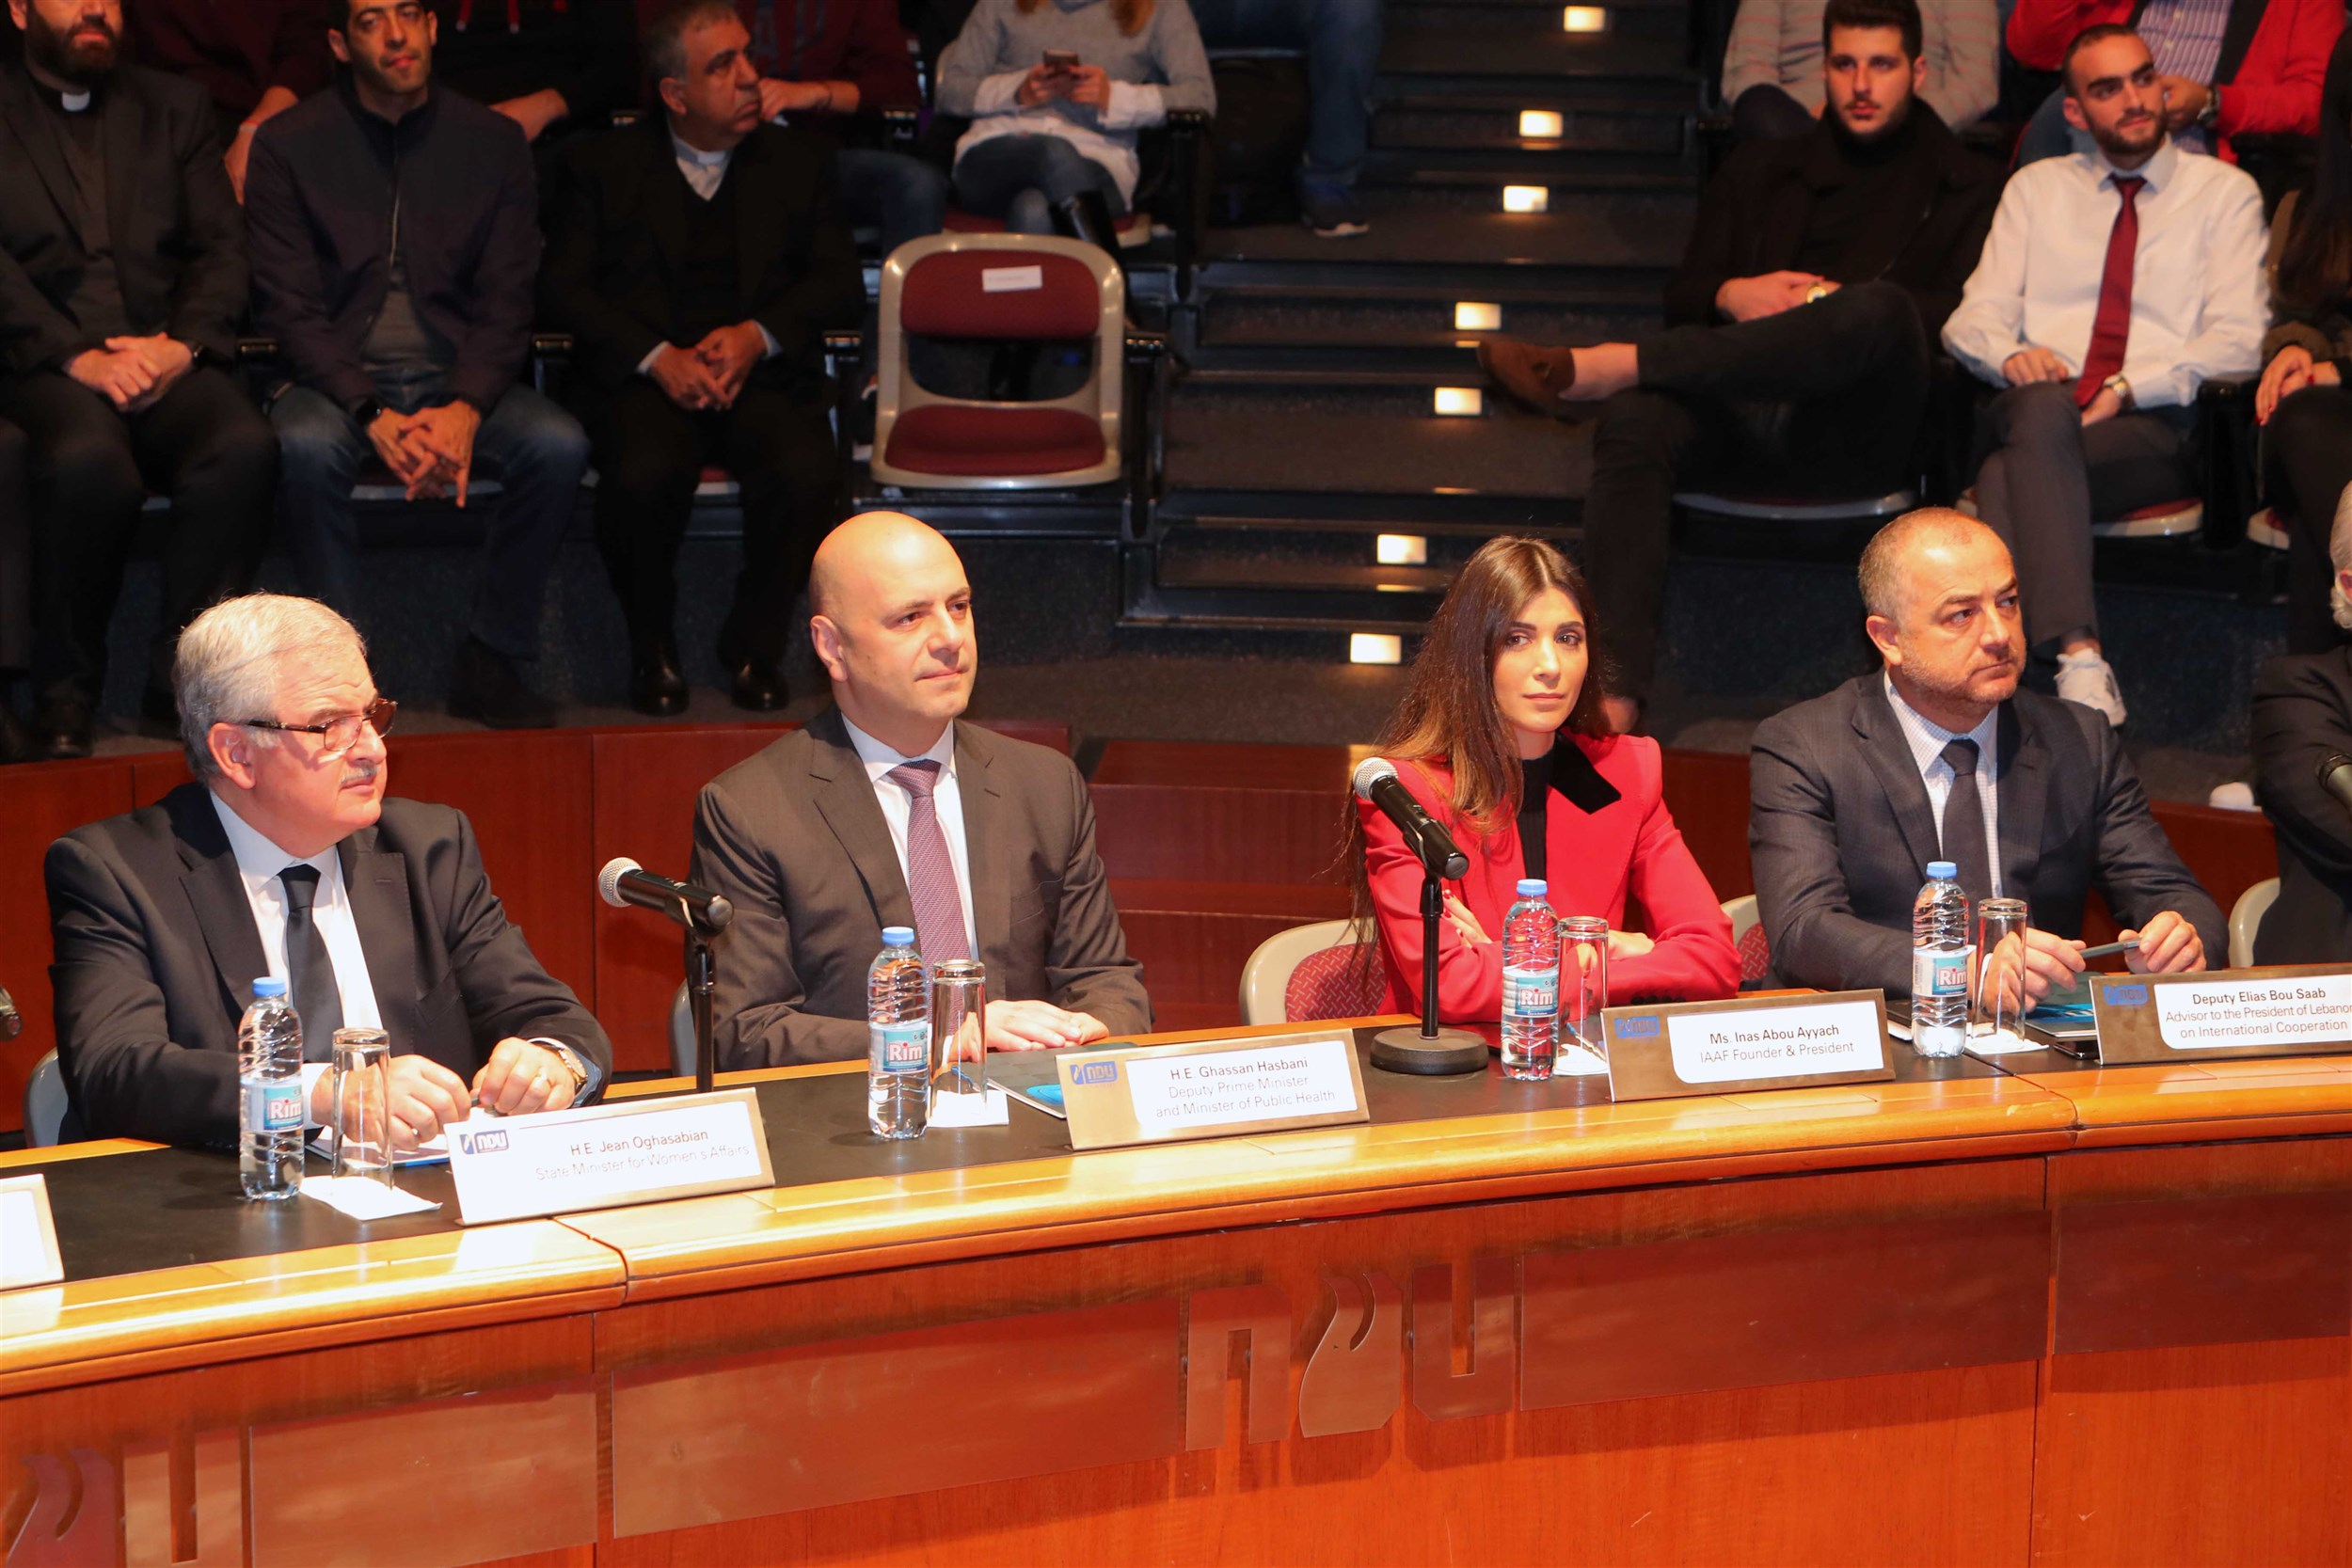 minister jean oghassapian, minister elias abou saad, minister ghassan hasbani and mrs. inas al jarmakani as members of the honourable jury.